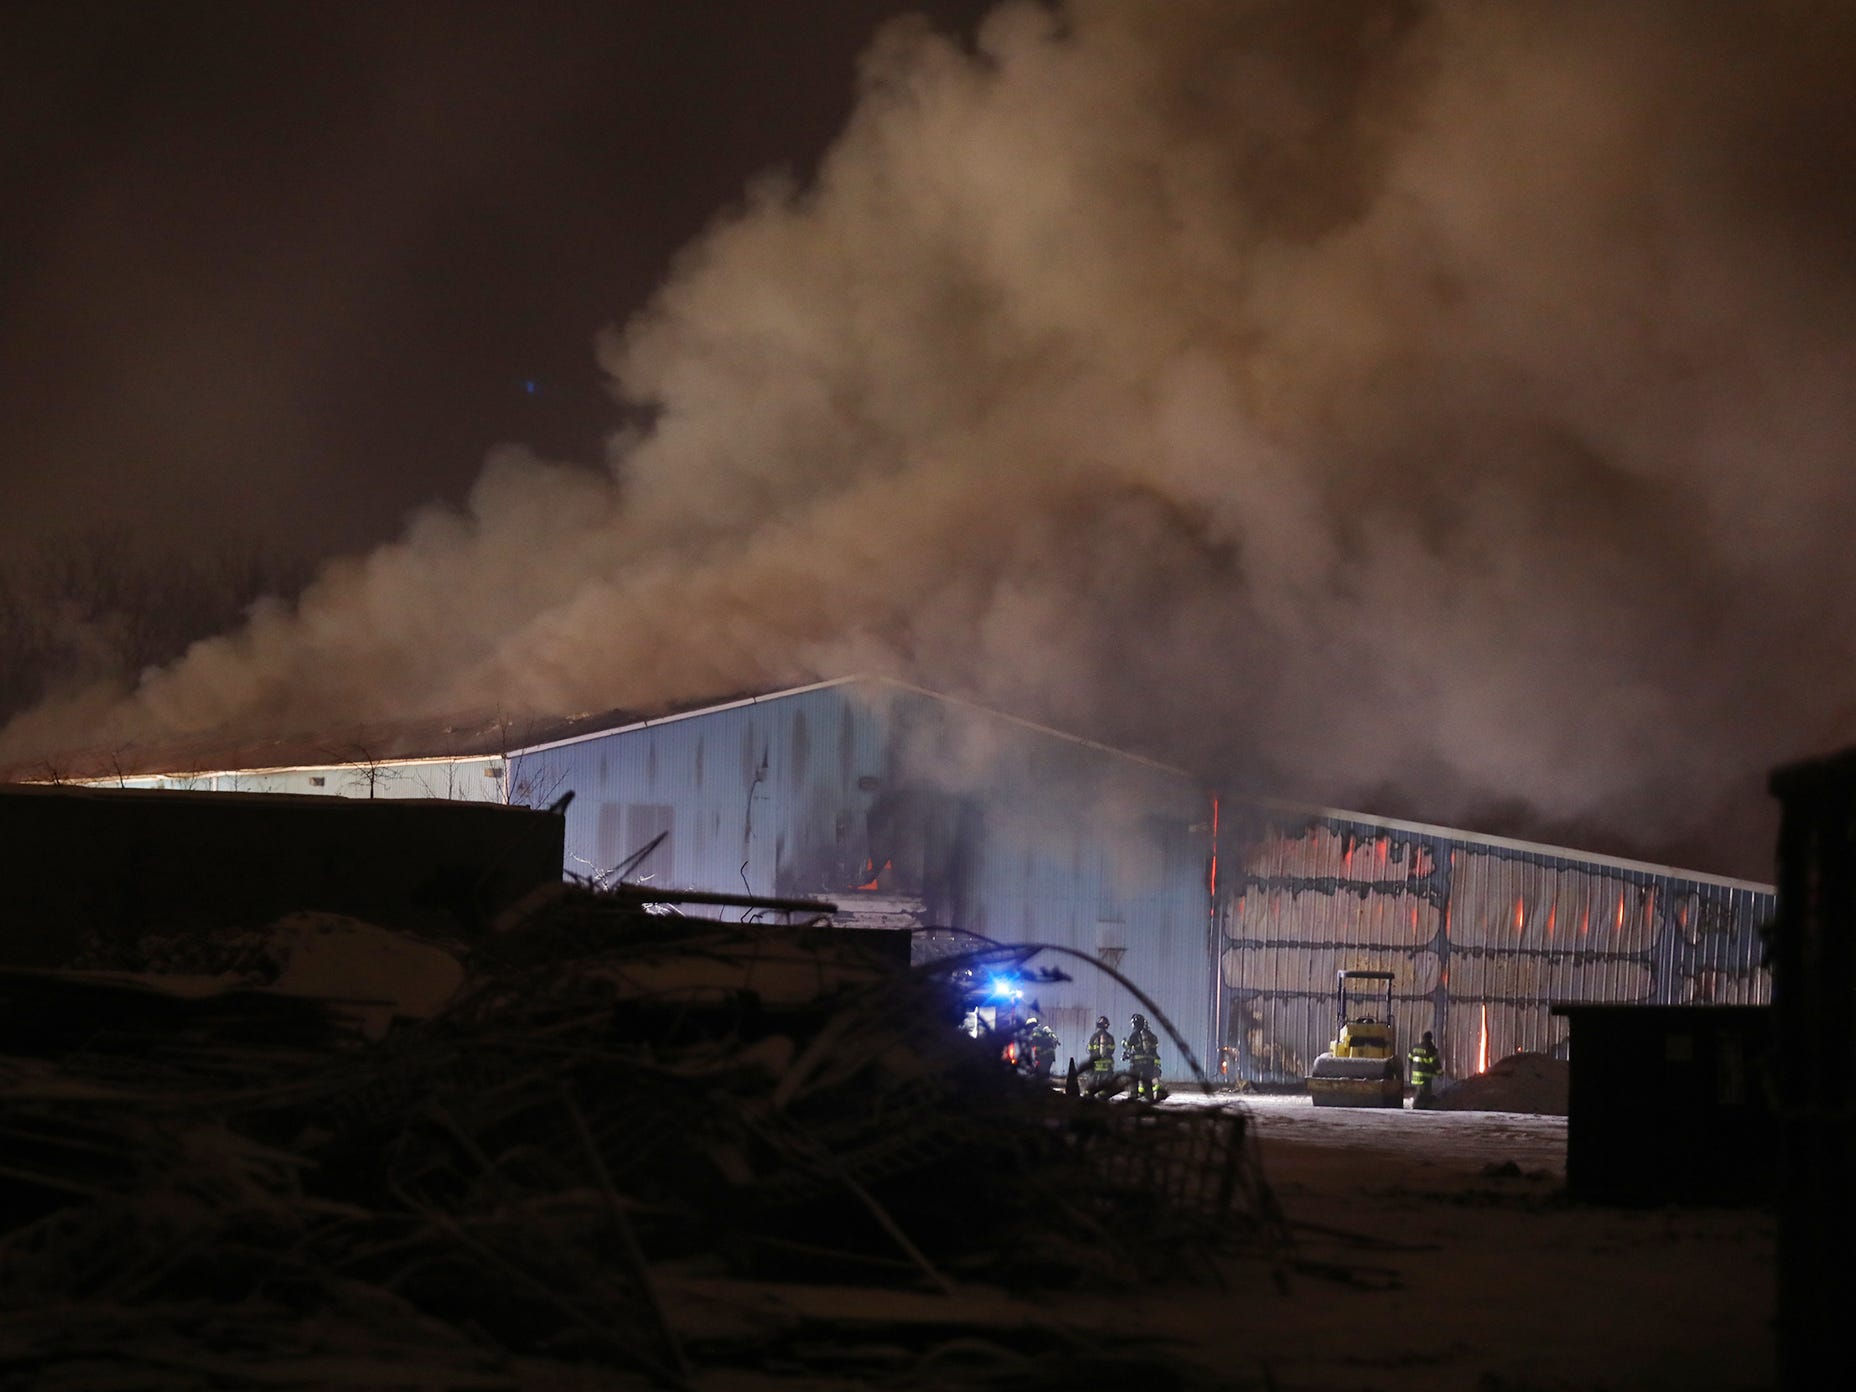 Smoke poured off the building and could be seen for blocks.